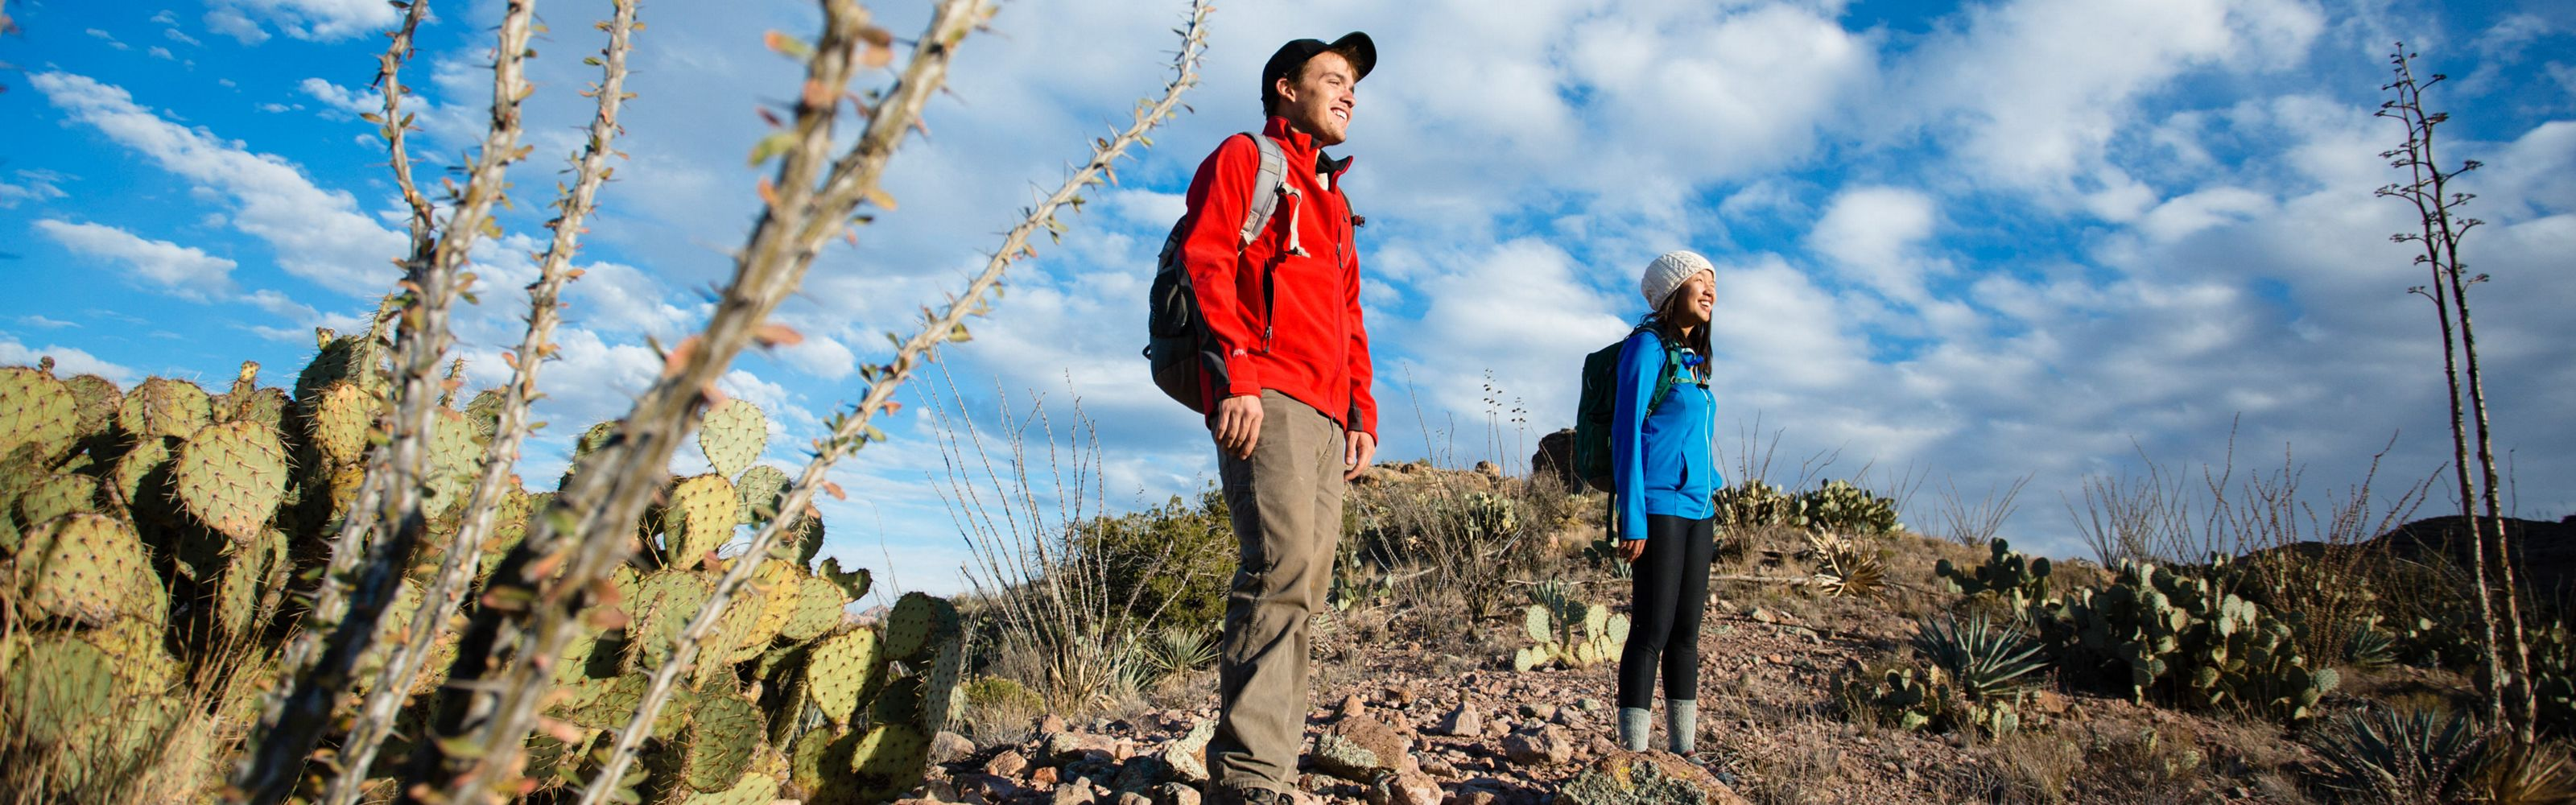 Two smiling people in hiking gear standing in a desert landscape with cactuses in the foreground.